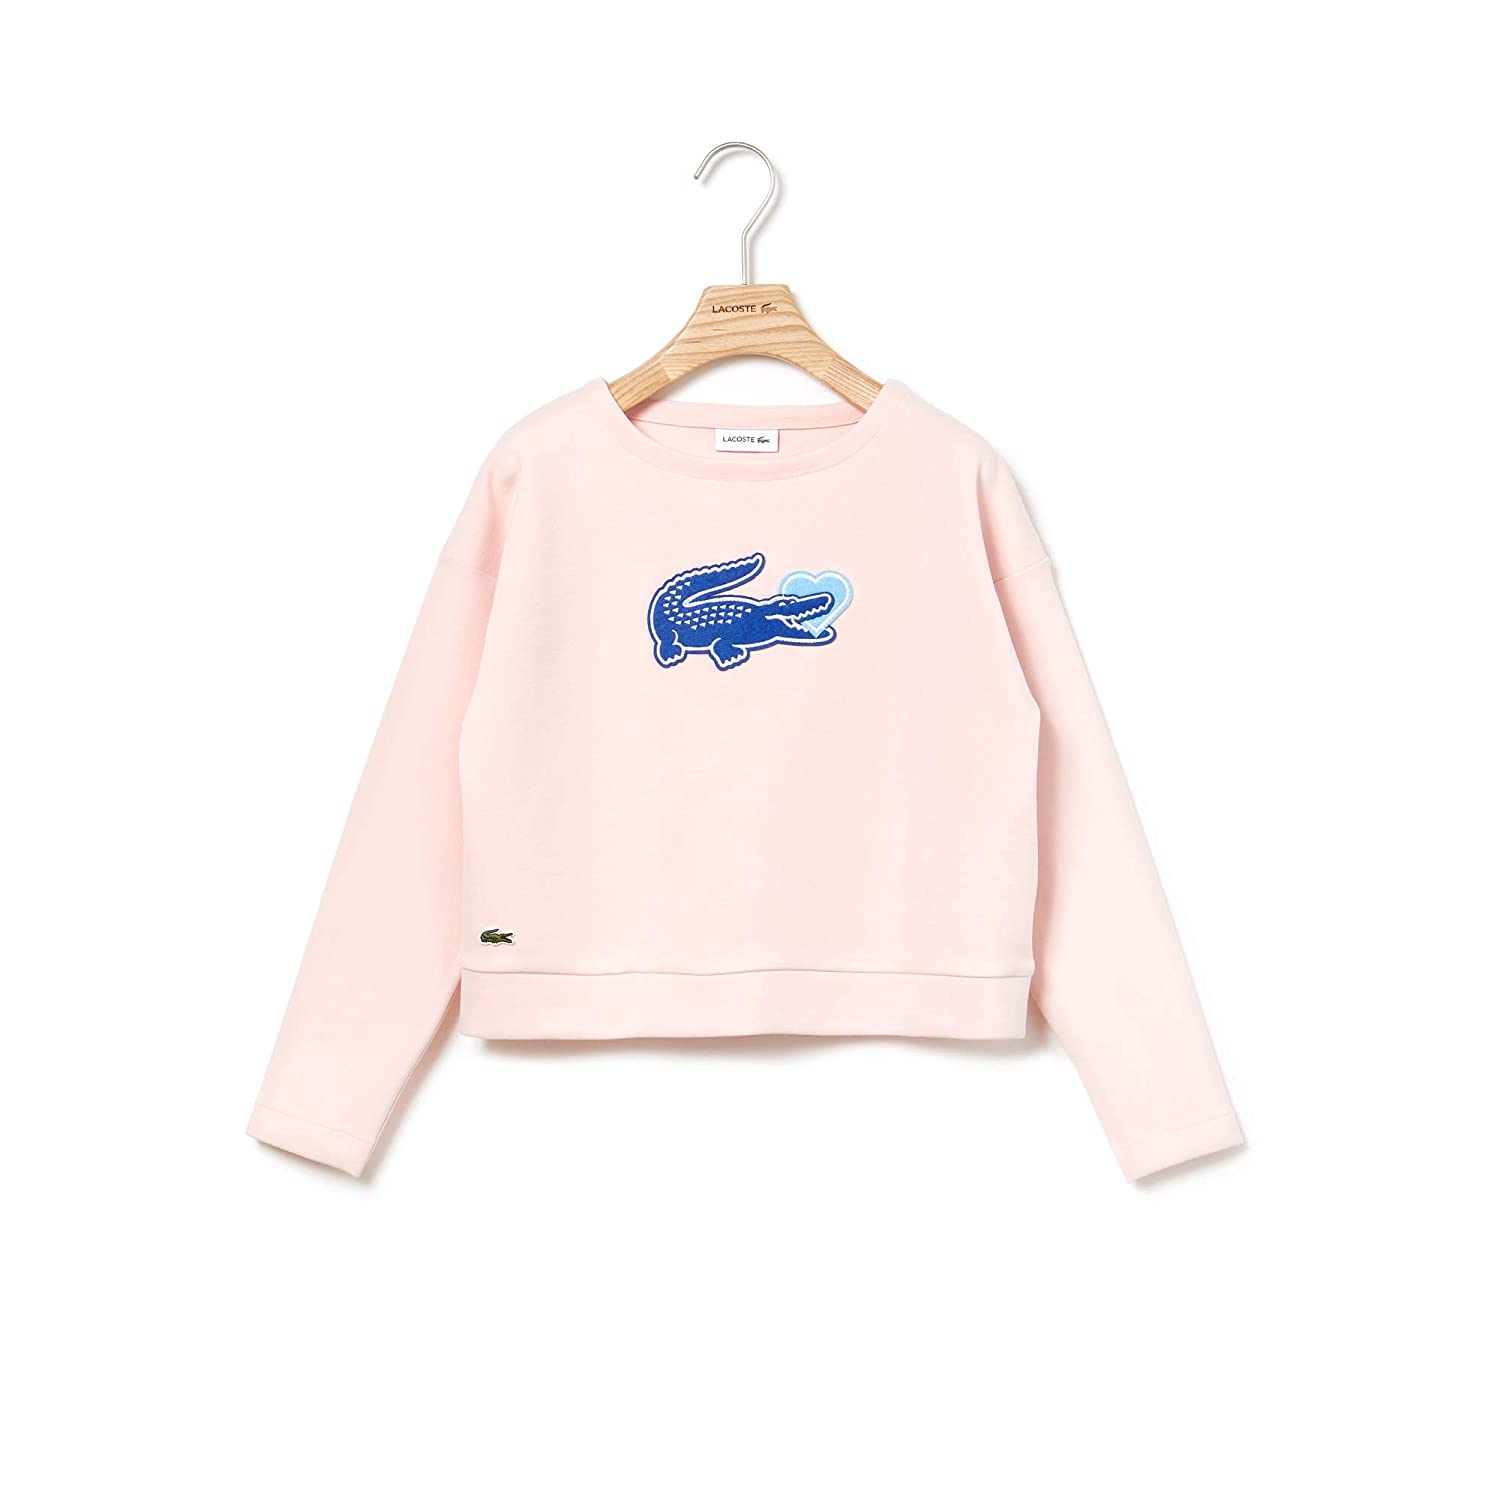 Sweat Shirt Pale 10 Enfant Lacoste Rose Sj4206 Ans WH2IYeED9